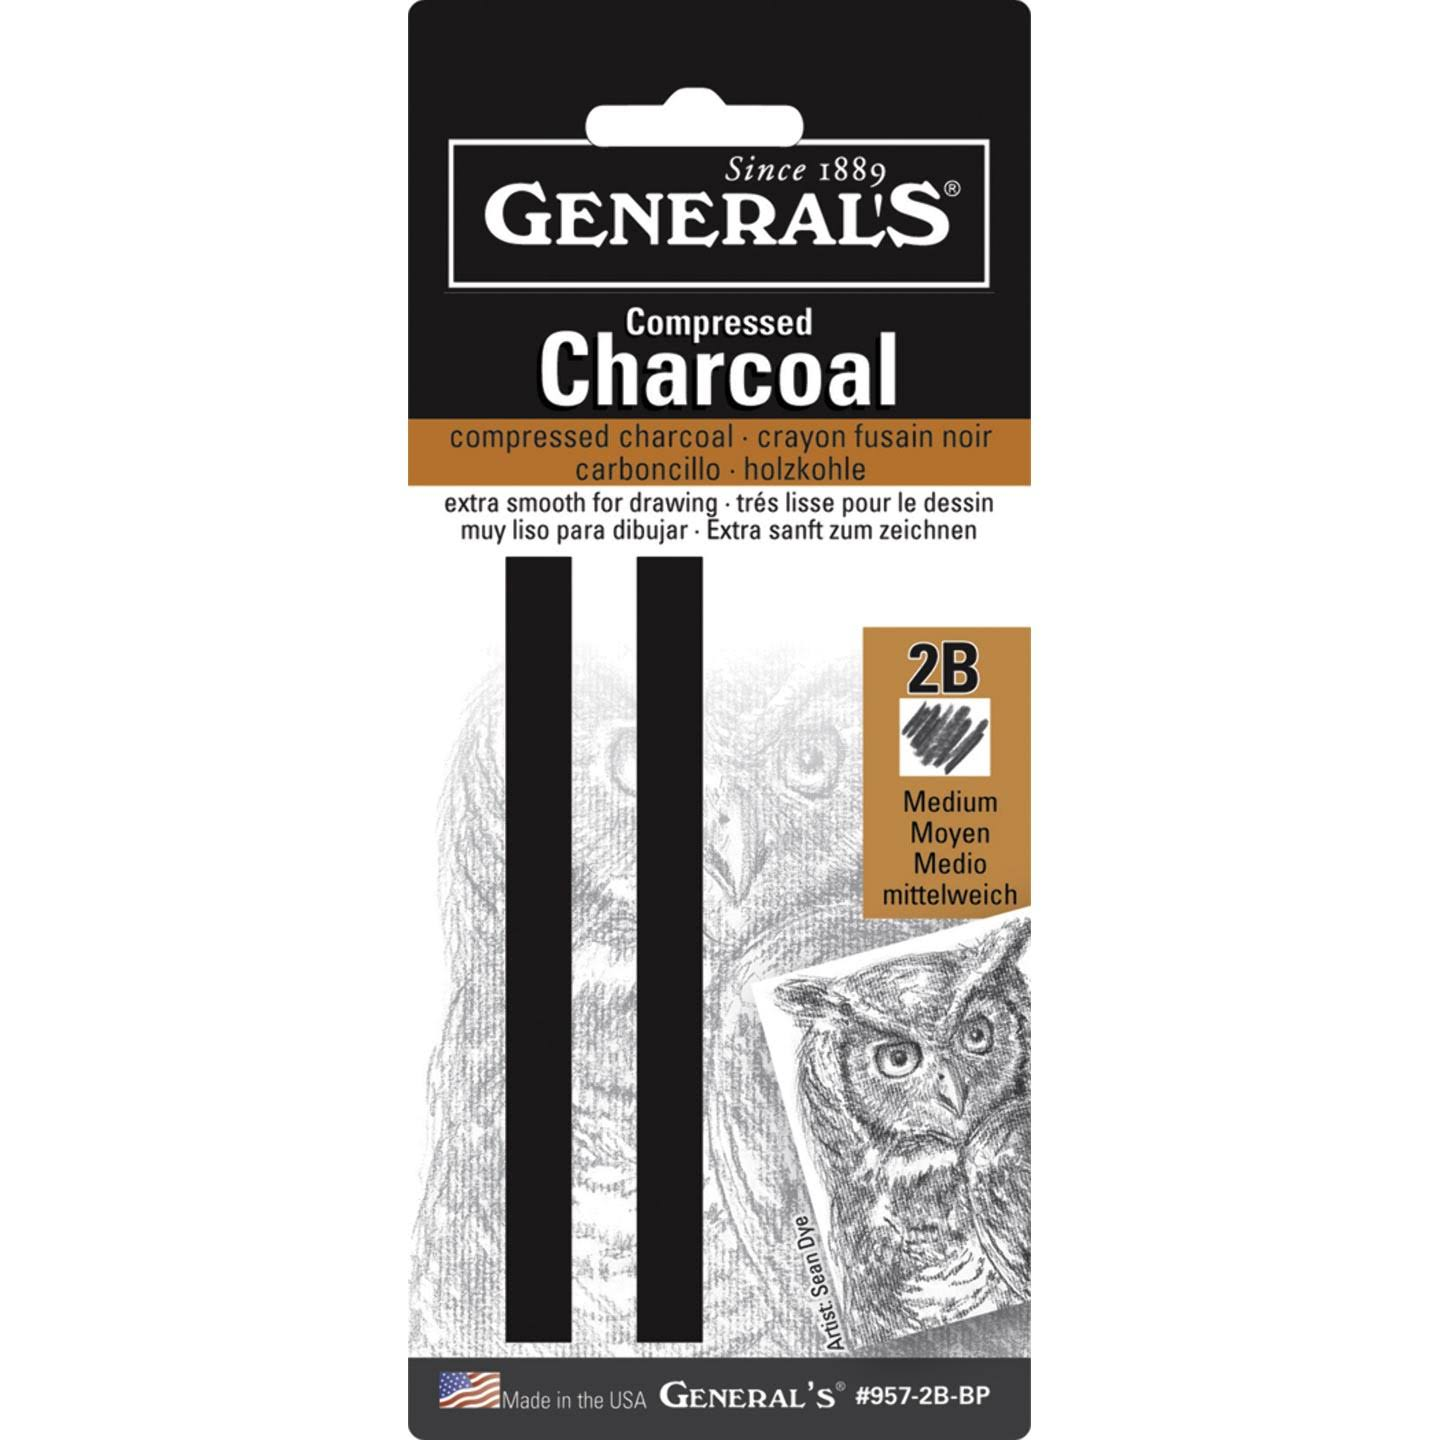 General's Compressed Charcoal Stick - 2B, x2